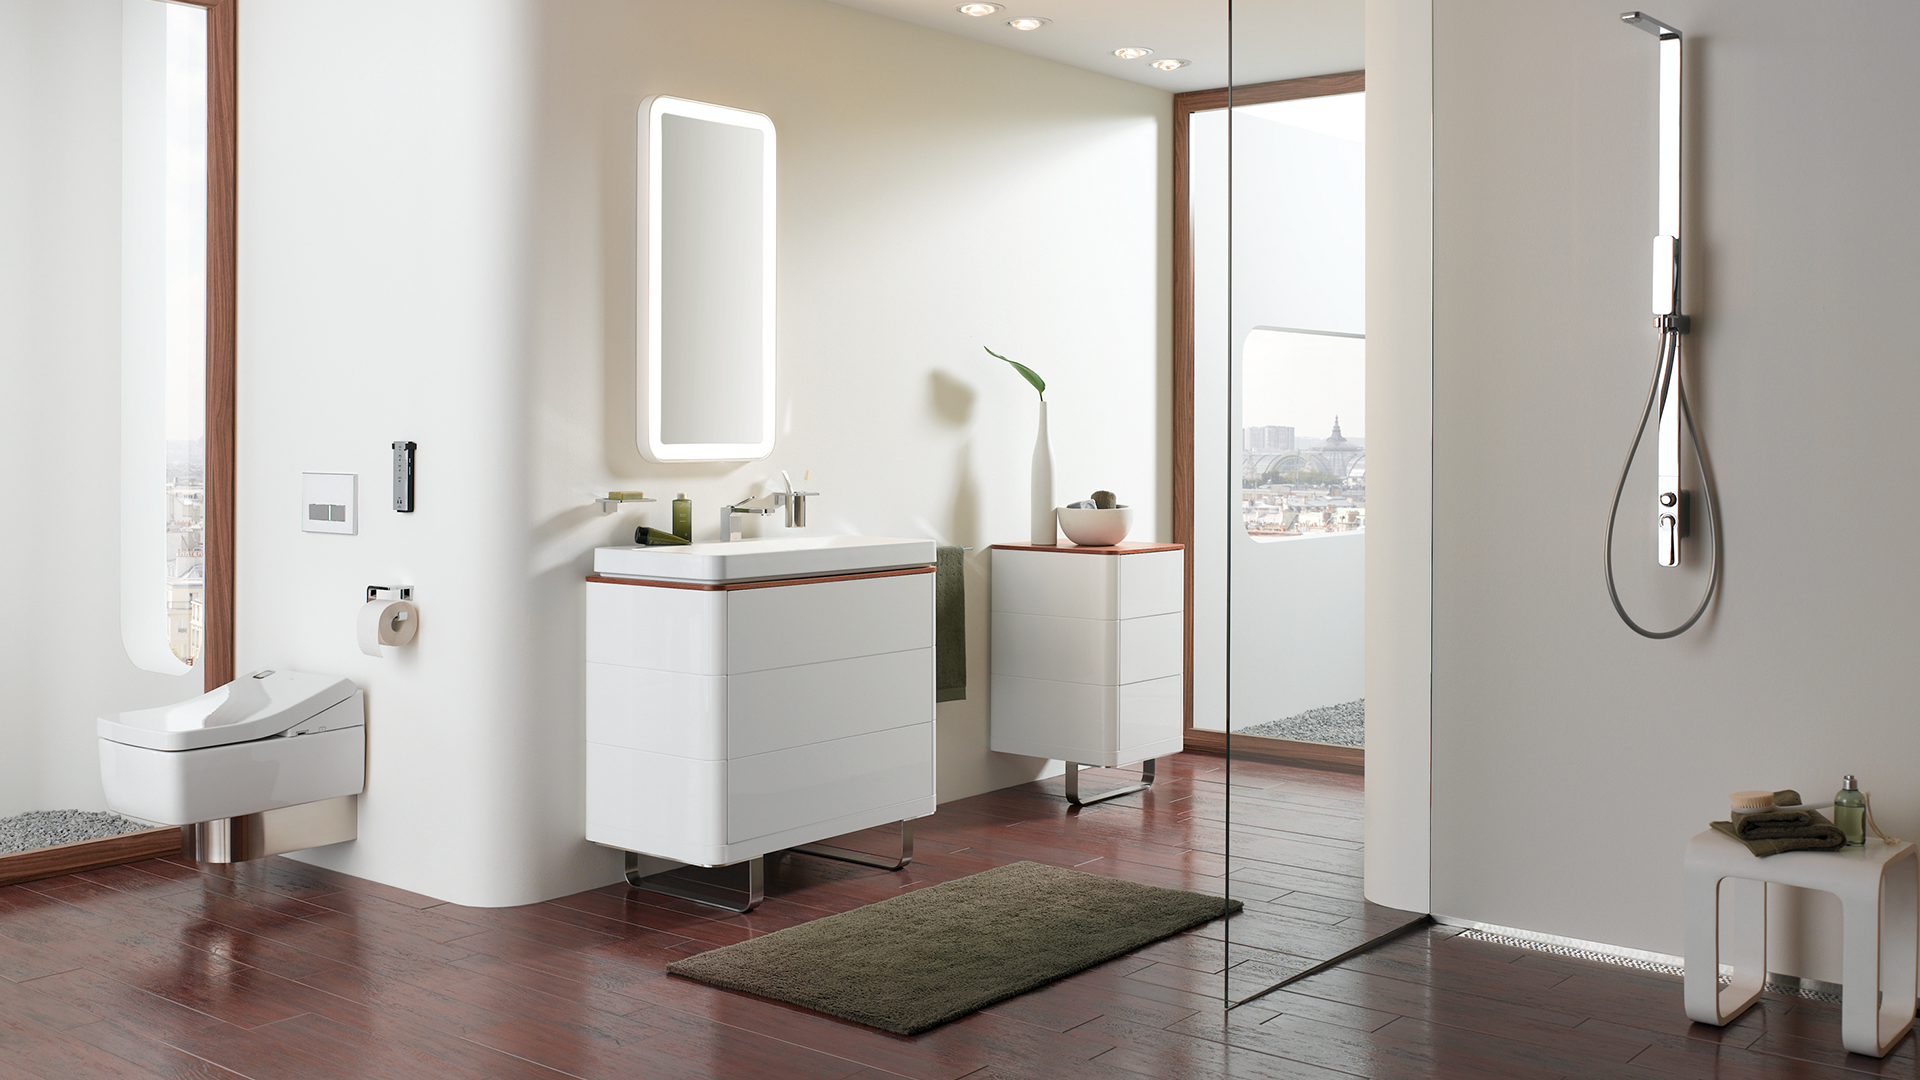 A spectacular TOTO bathroom the brand synonymous with